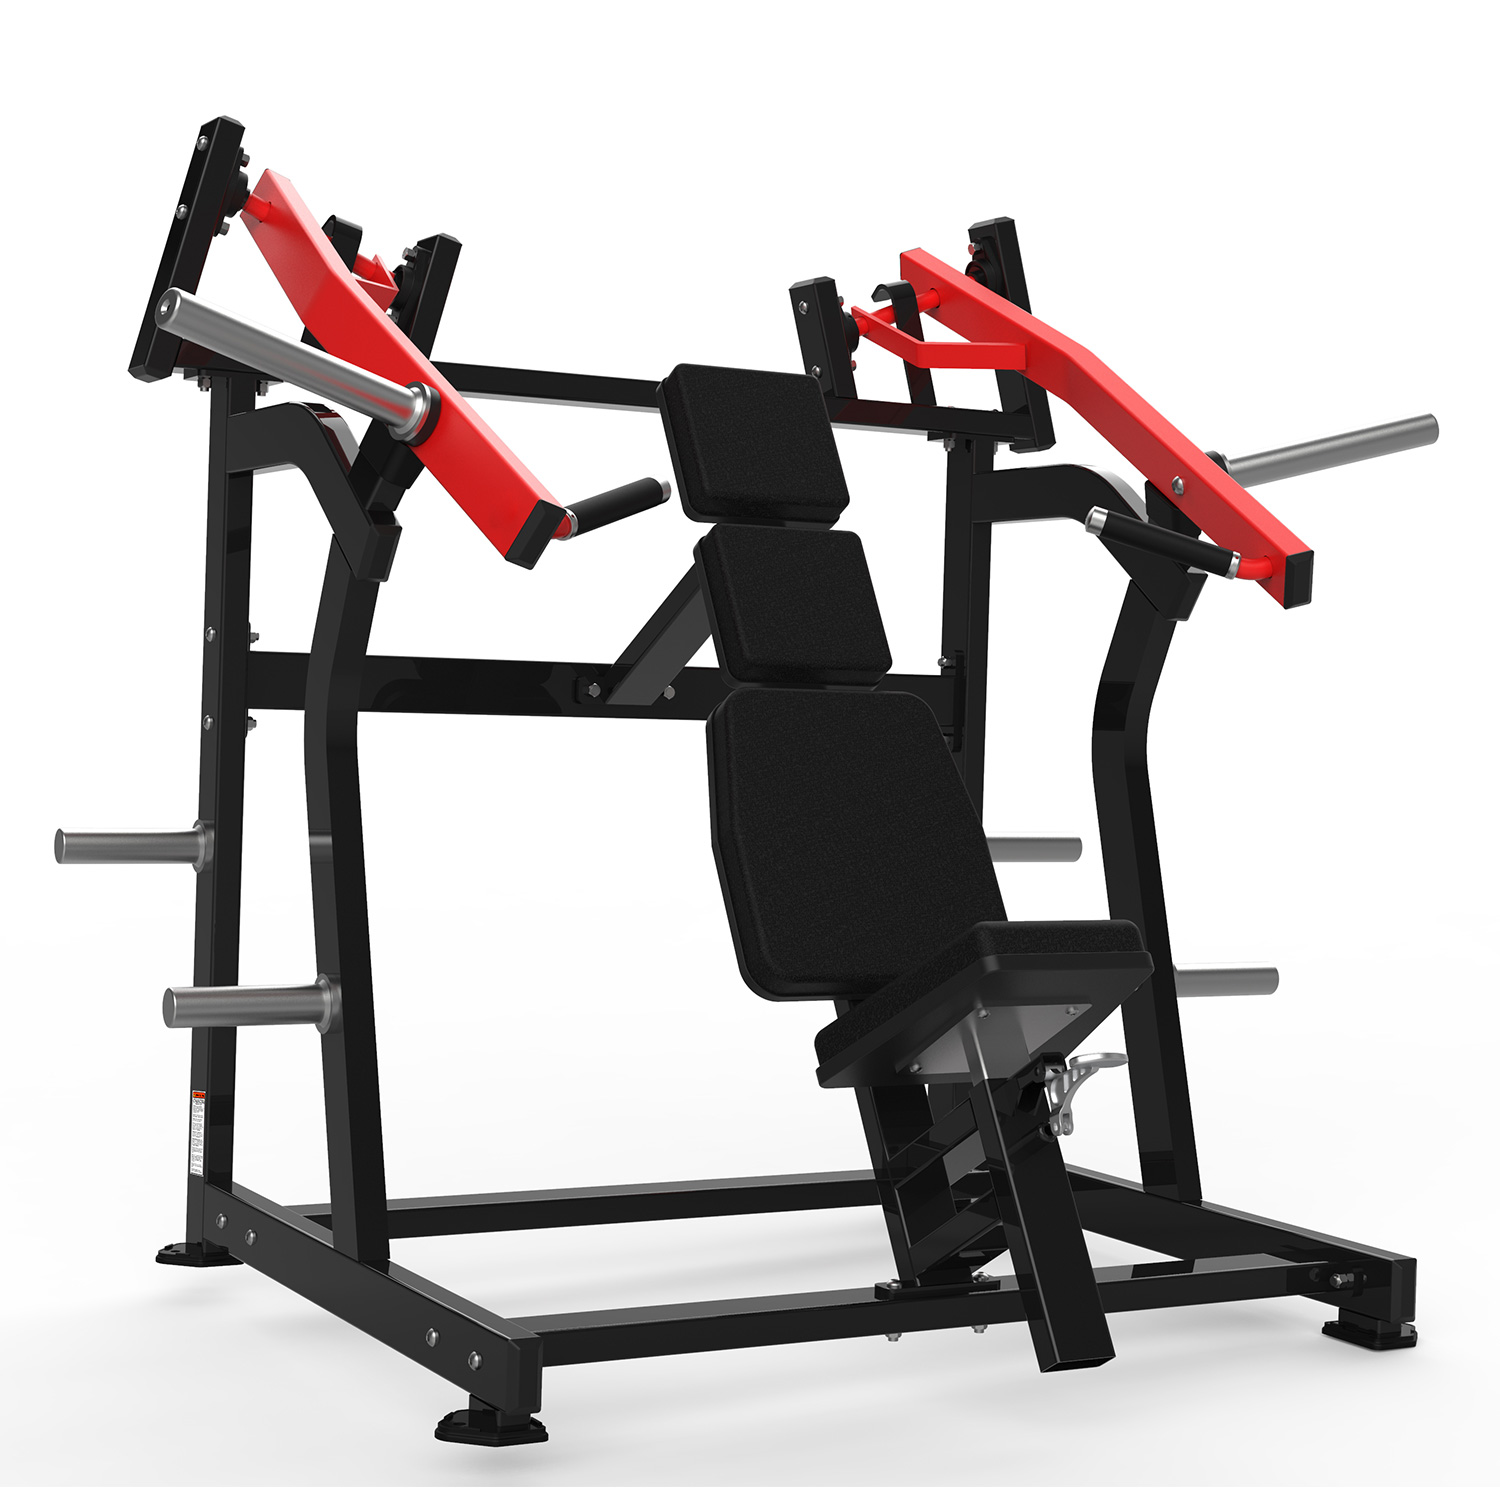 HS-1013 Super Incline Press